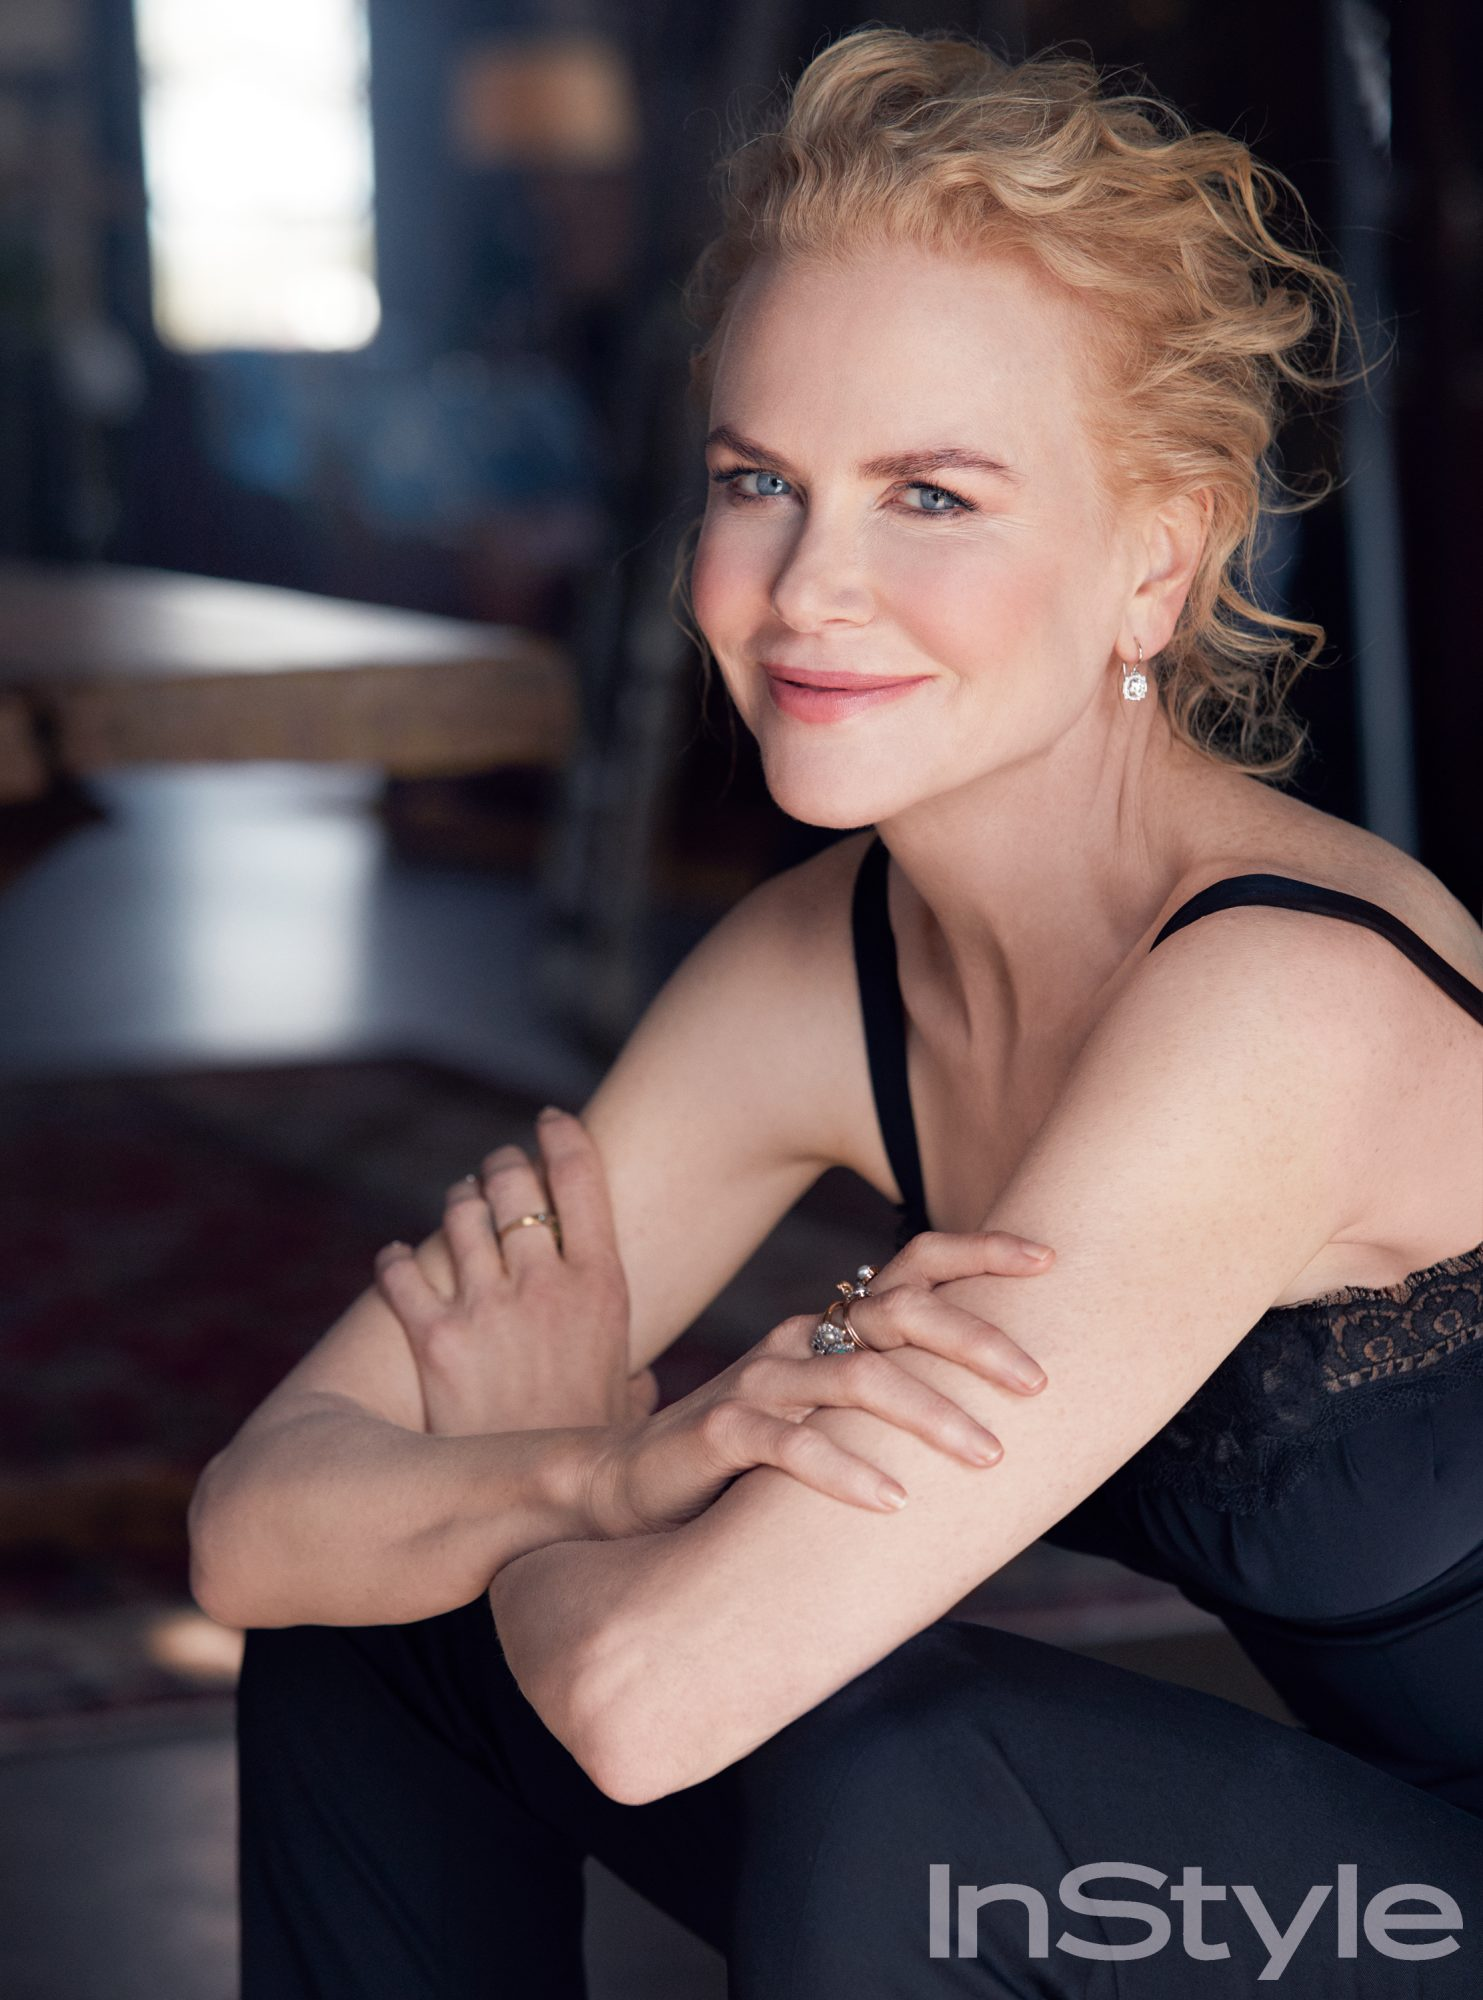 You Can Find Nicole Kidman's Favorite Sunscreen in the Drugstore